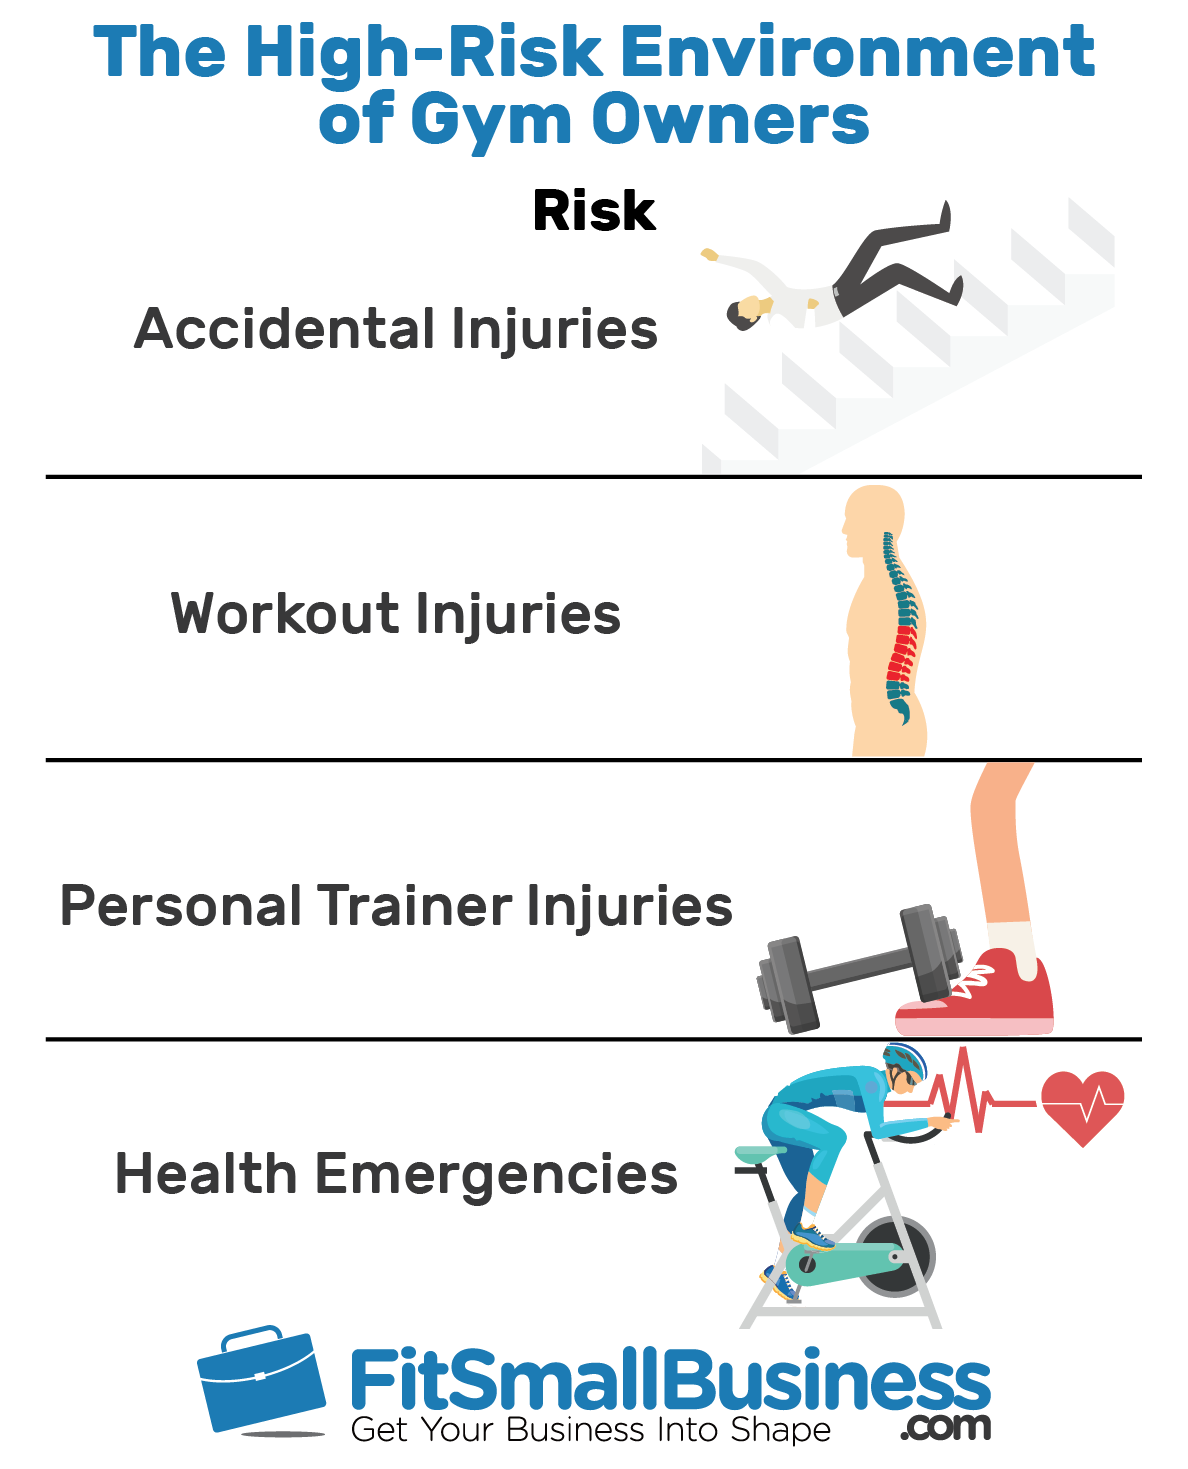 Risk Exposures That Gym Insurance Covers - Info-graphics